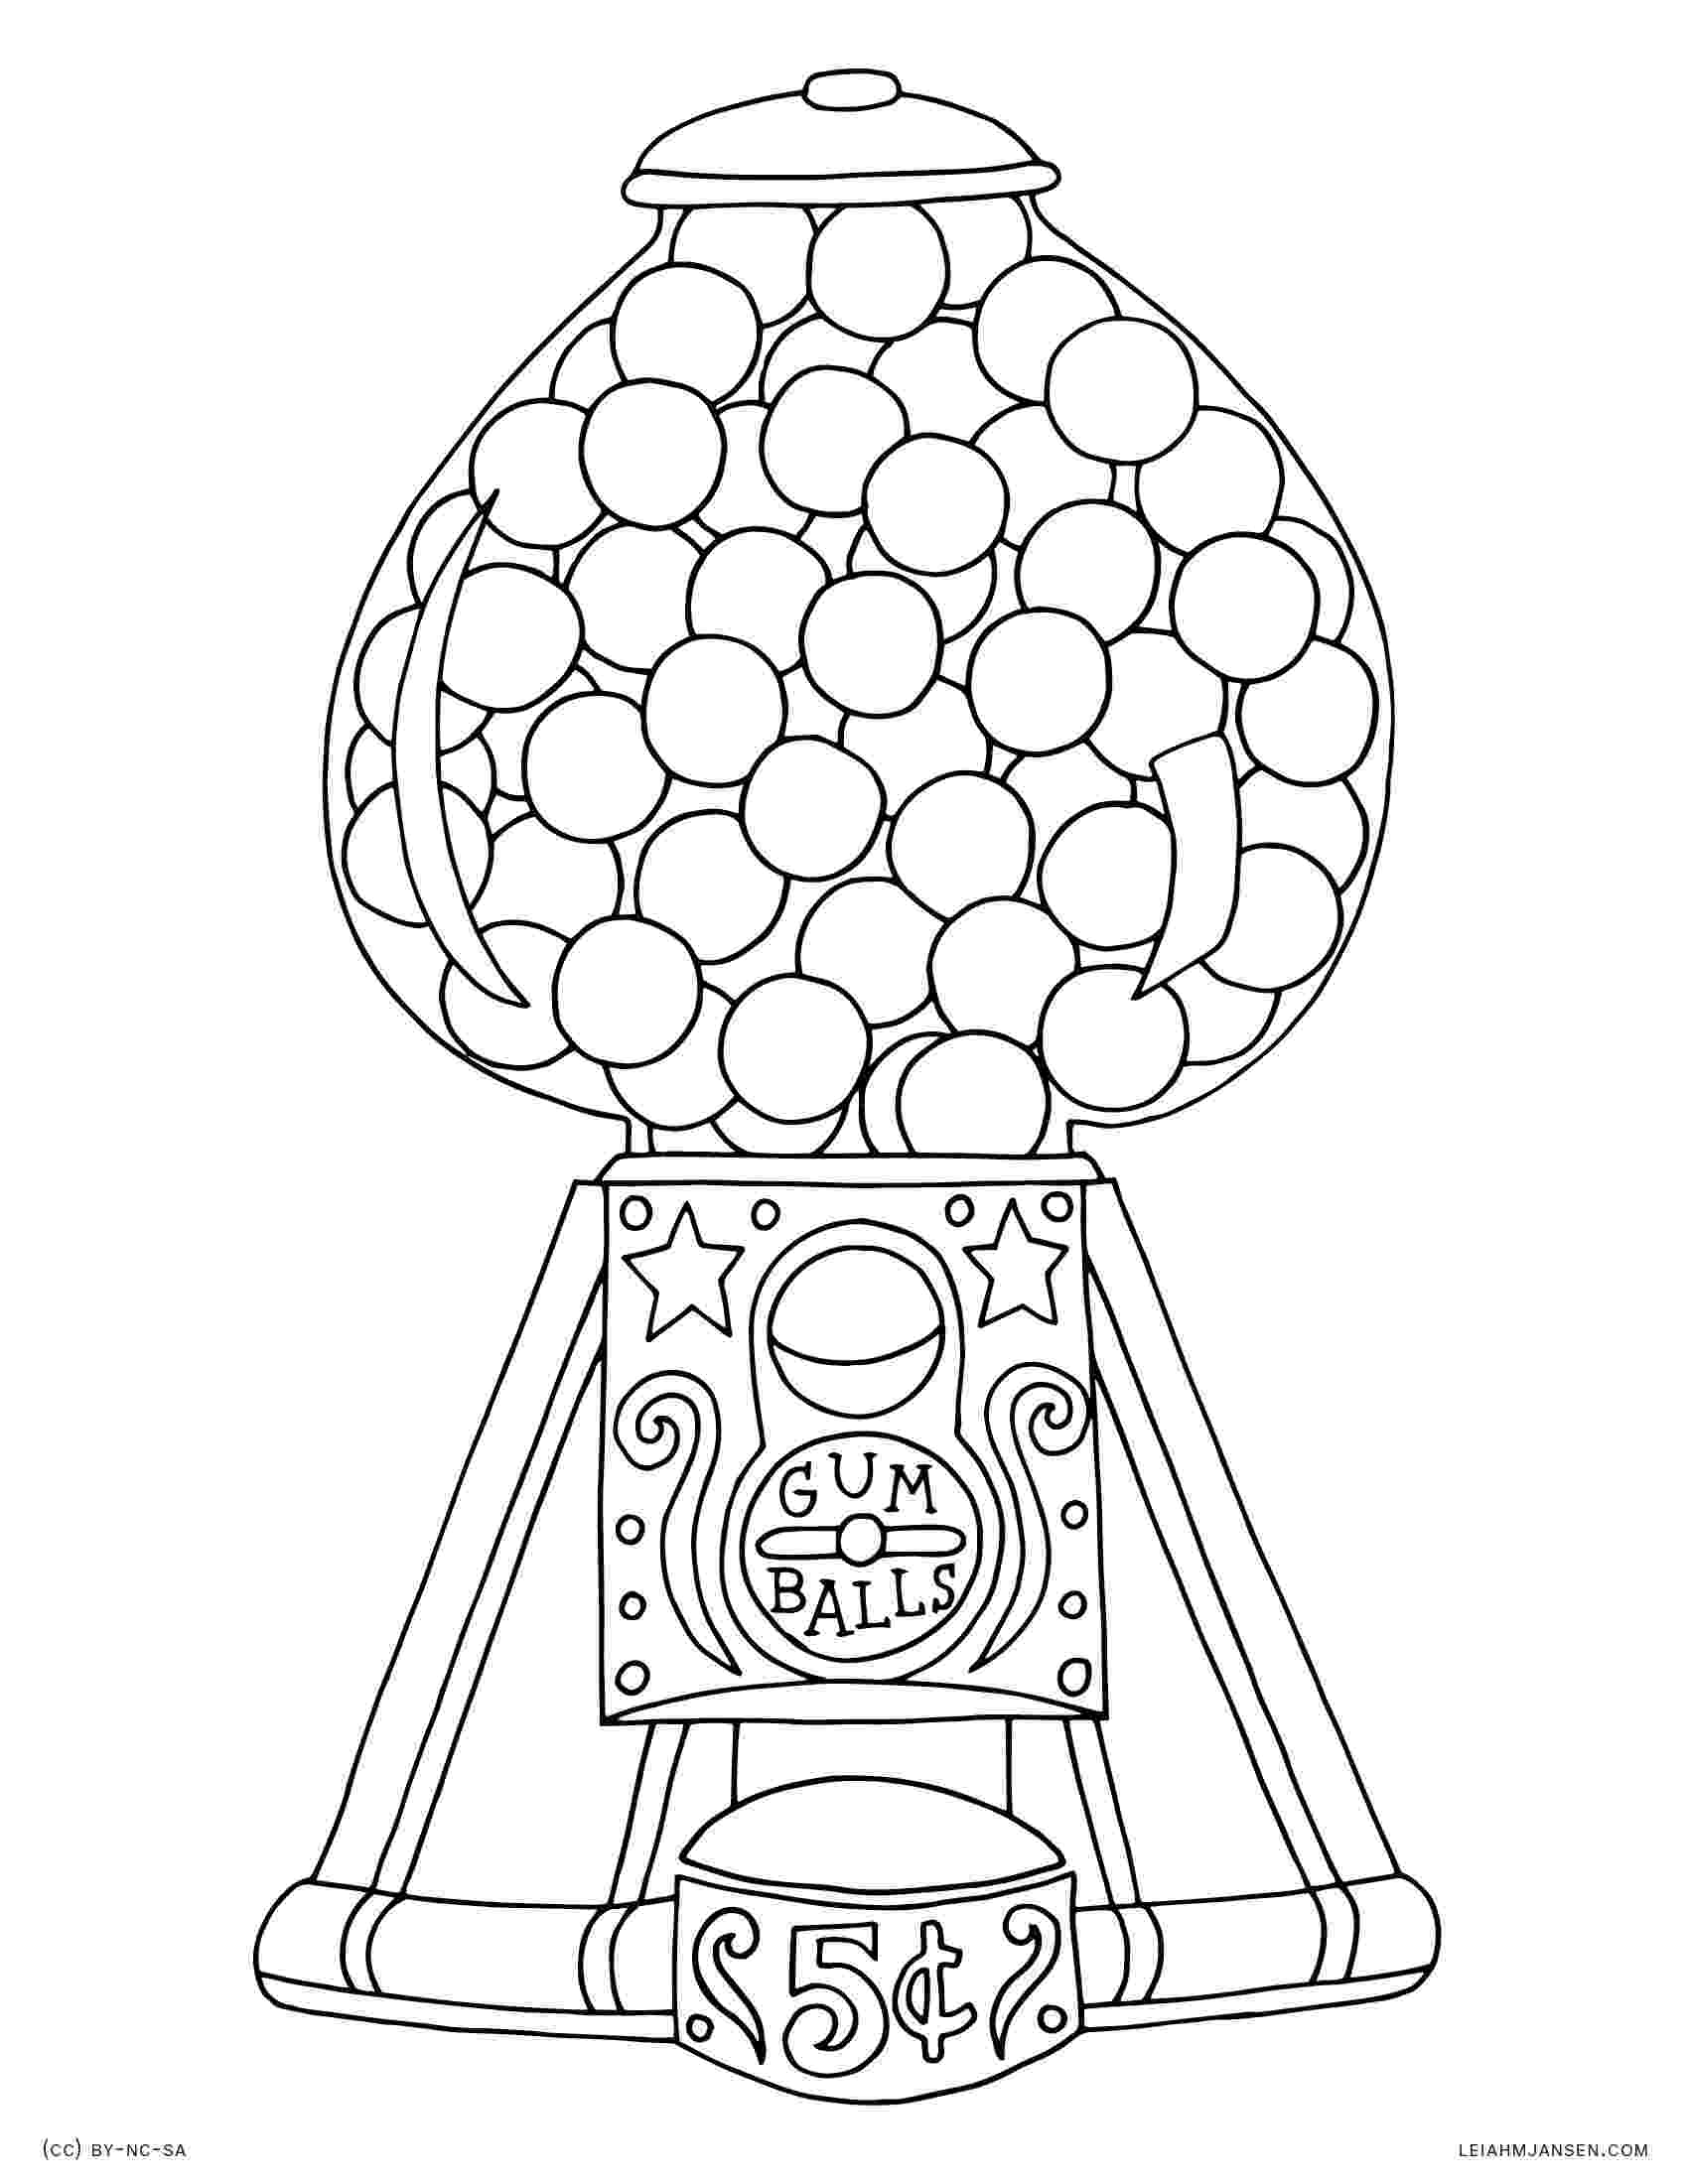 gumball machine coloring page gumball machine line art coloring pages coloring pages machine page coloring gumball